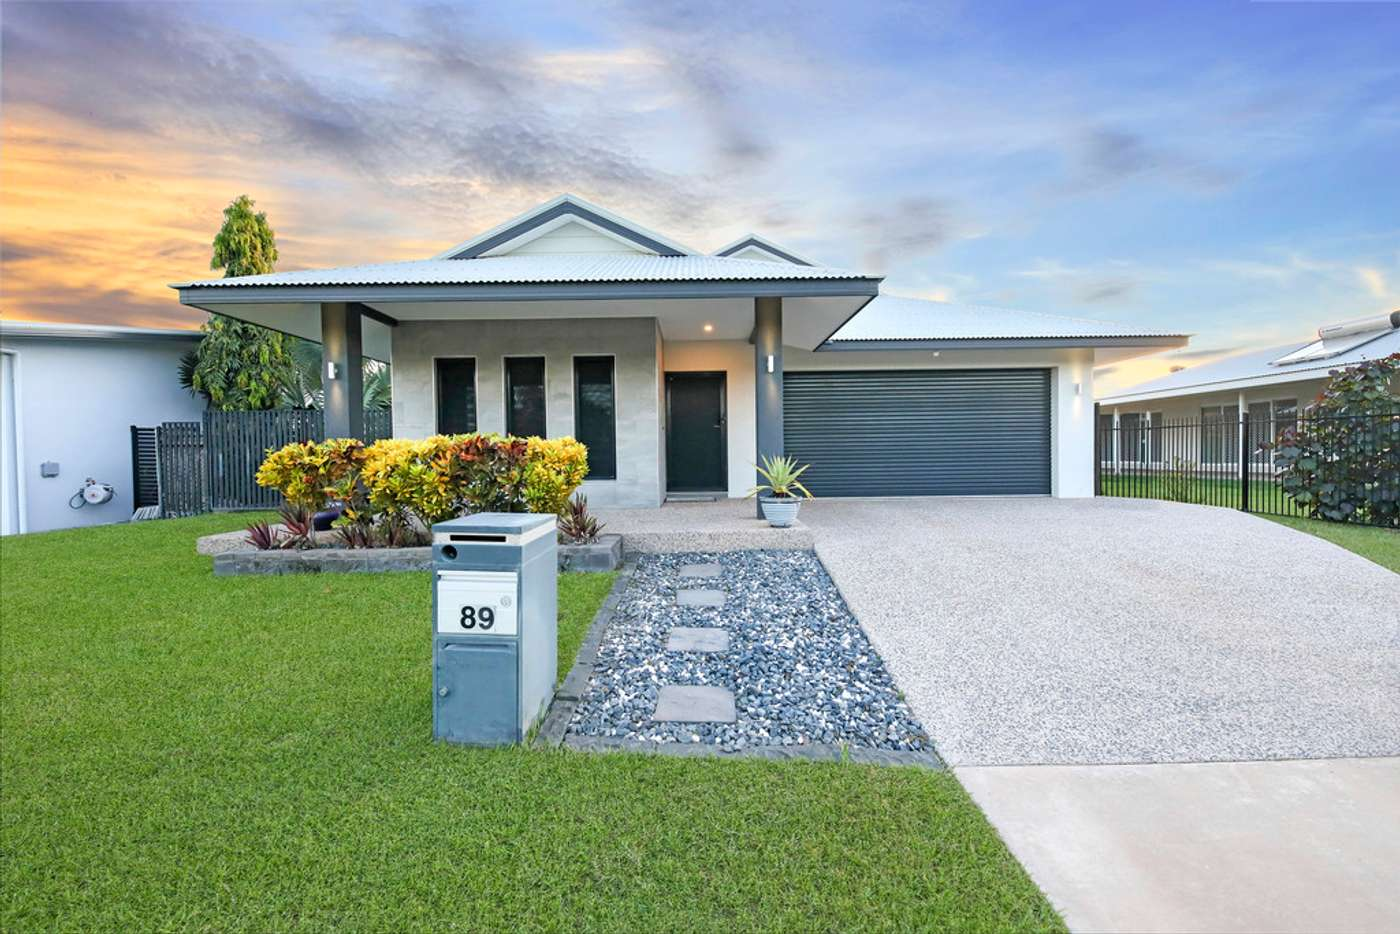 Main view of Homely house listing, 89 Asche Street, Muirhead NT 810